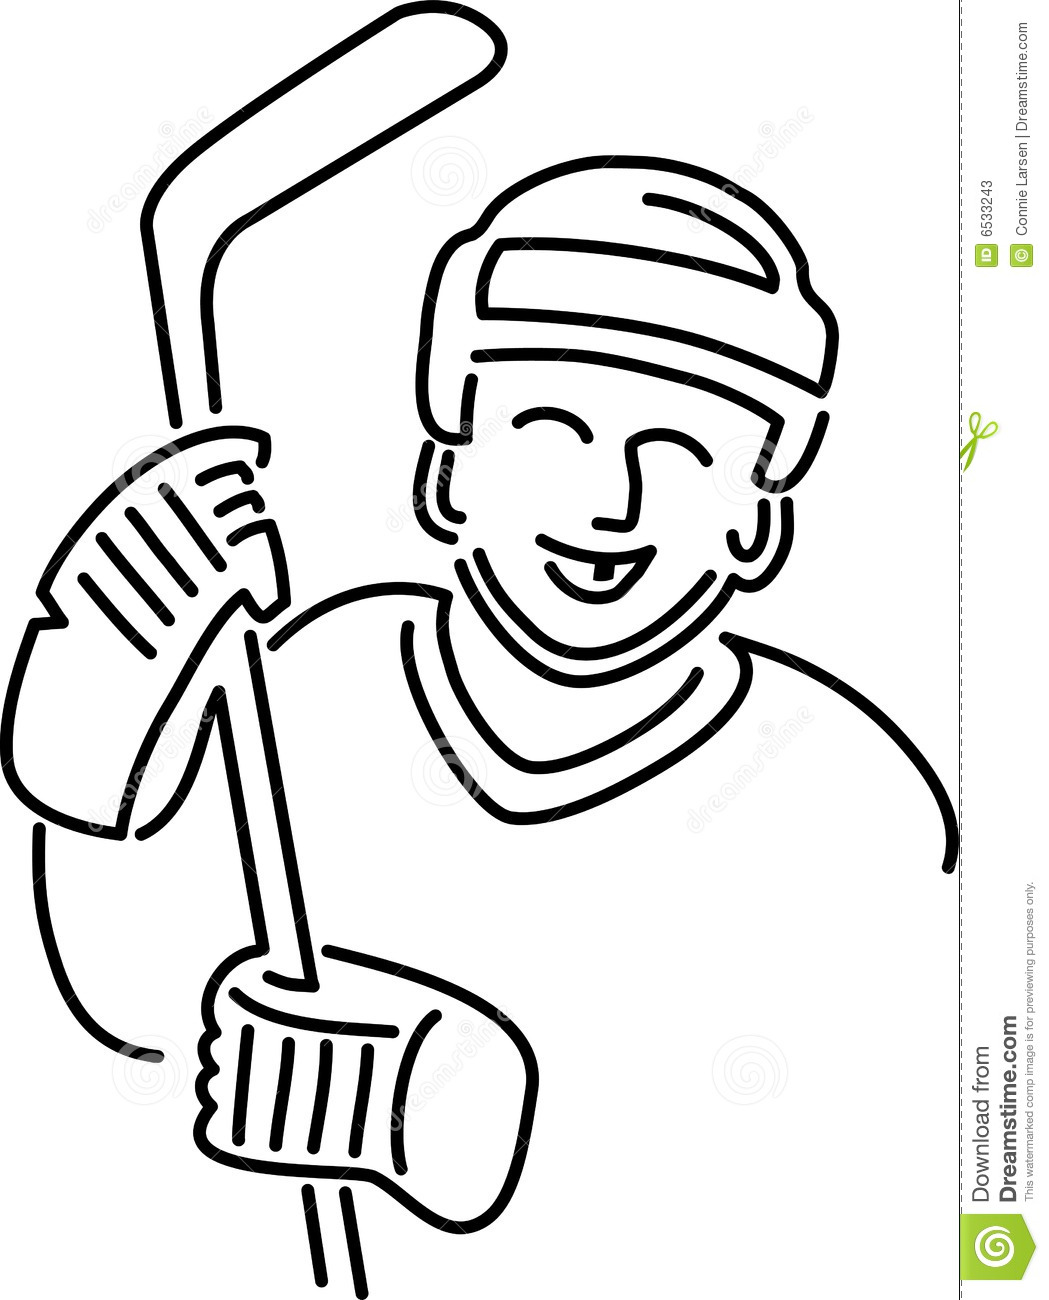 Royalty Free Stock Photos Decorative Border Designs Image1426428 also Royalty Free Stock Photos Detailed Vectoral Tree Plant Silhouettes Image8916318 likewise Royalty Free Stock Photo Business People Silhouette Super Set Image13004705 as well Stock Photos Hockey Player Cartoon Image6533243 together with Royalty Free Stock Photography Silhouettes Female Gymnasts Gym Image37221497. on united states map vector ai